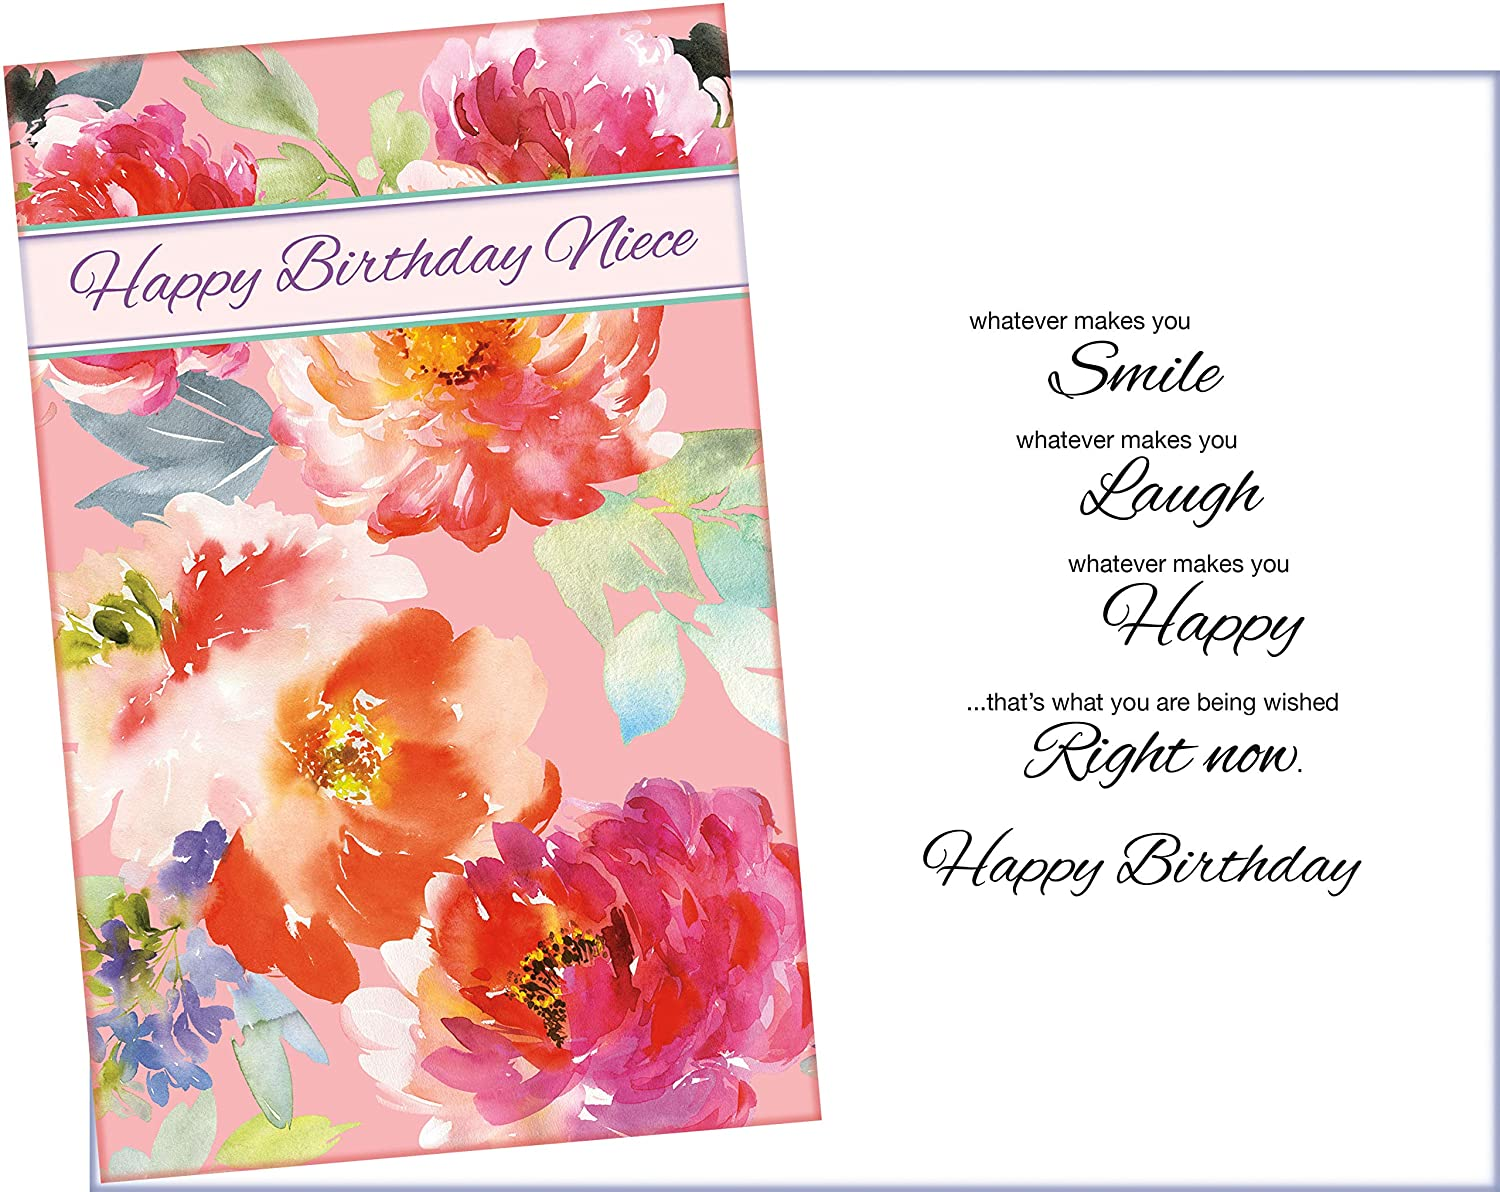 Birthday Card For Niece.Prime Greetings Floral Happy Birthday Greeting Card For Niece